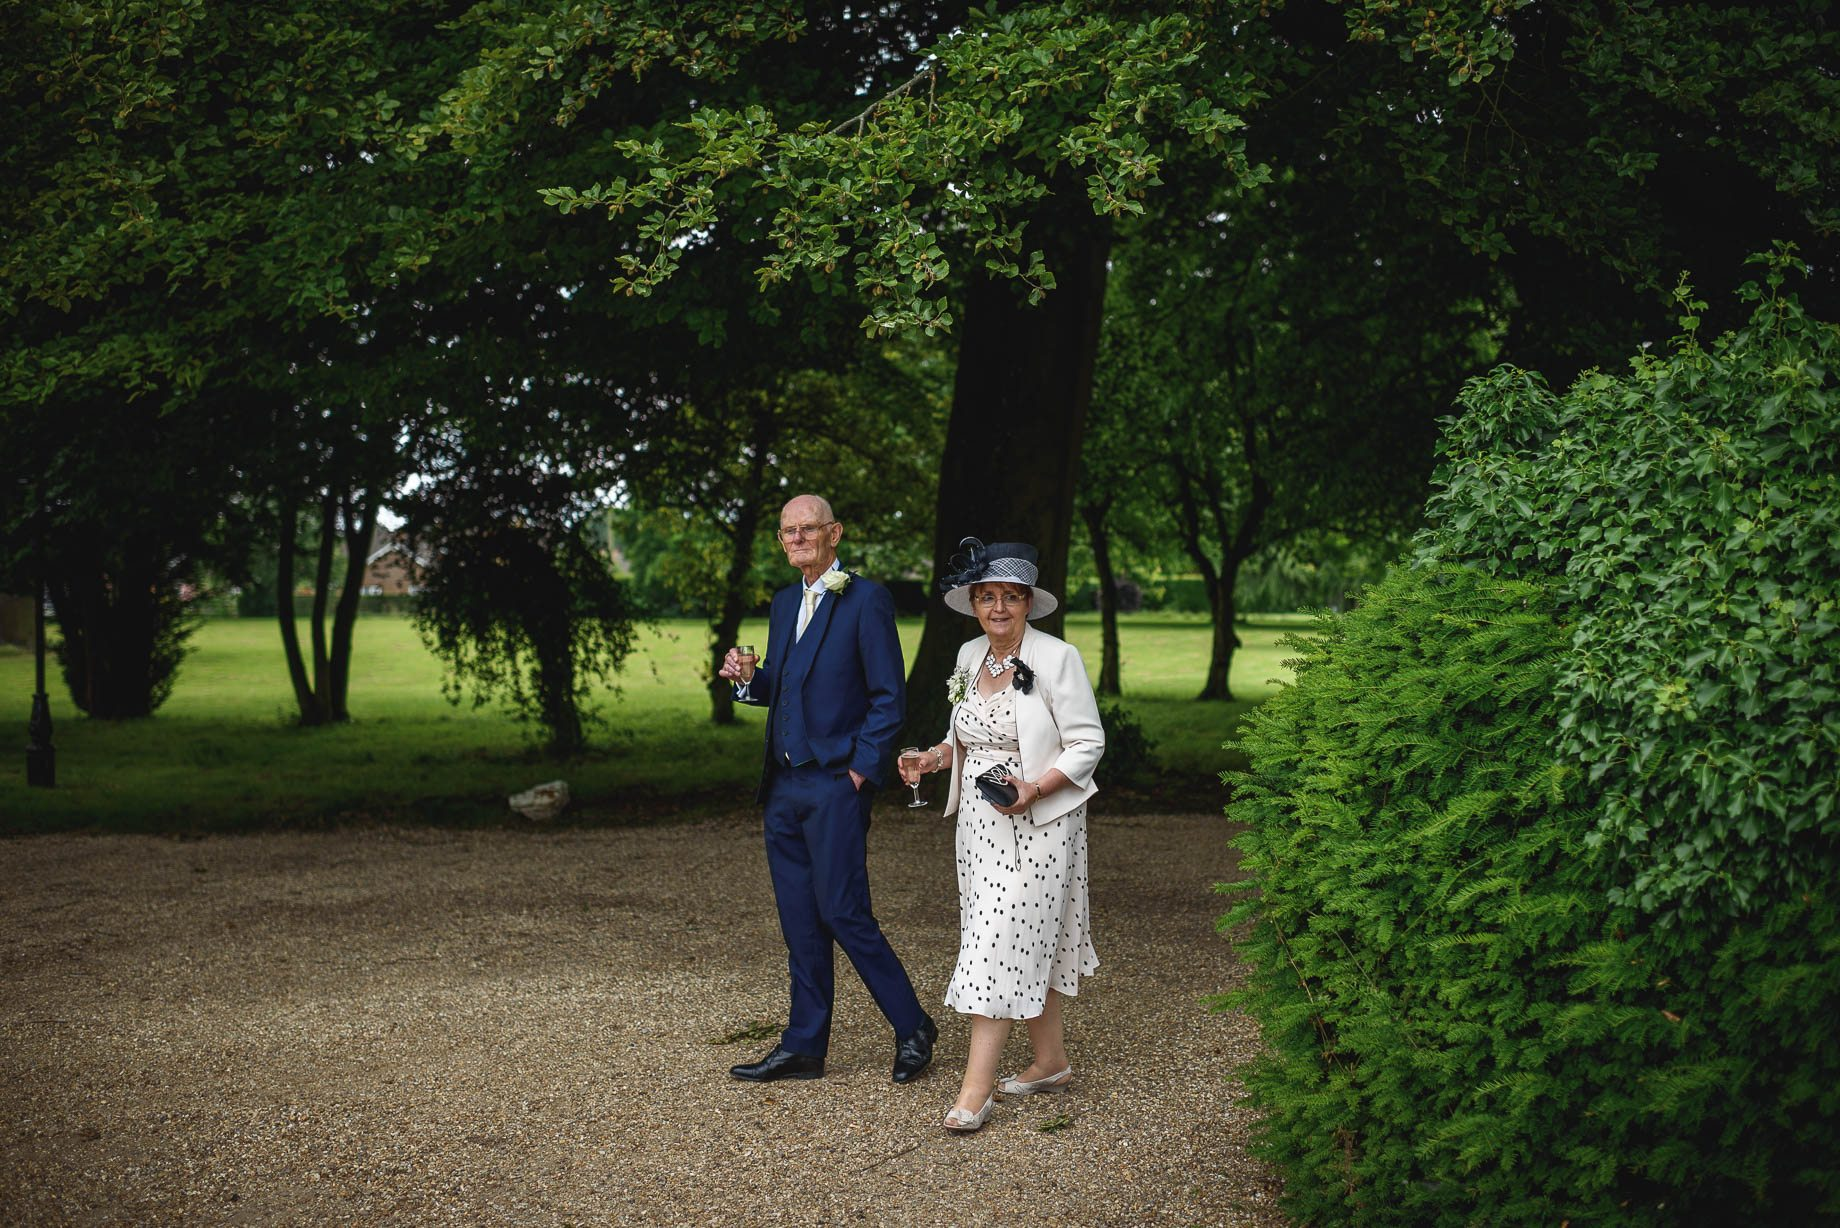 Hertfordshire wedding photography - Sarah and Stephen by Guy Collier Photography (93 of 161)